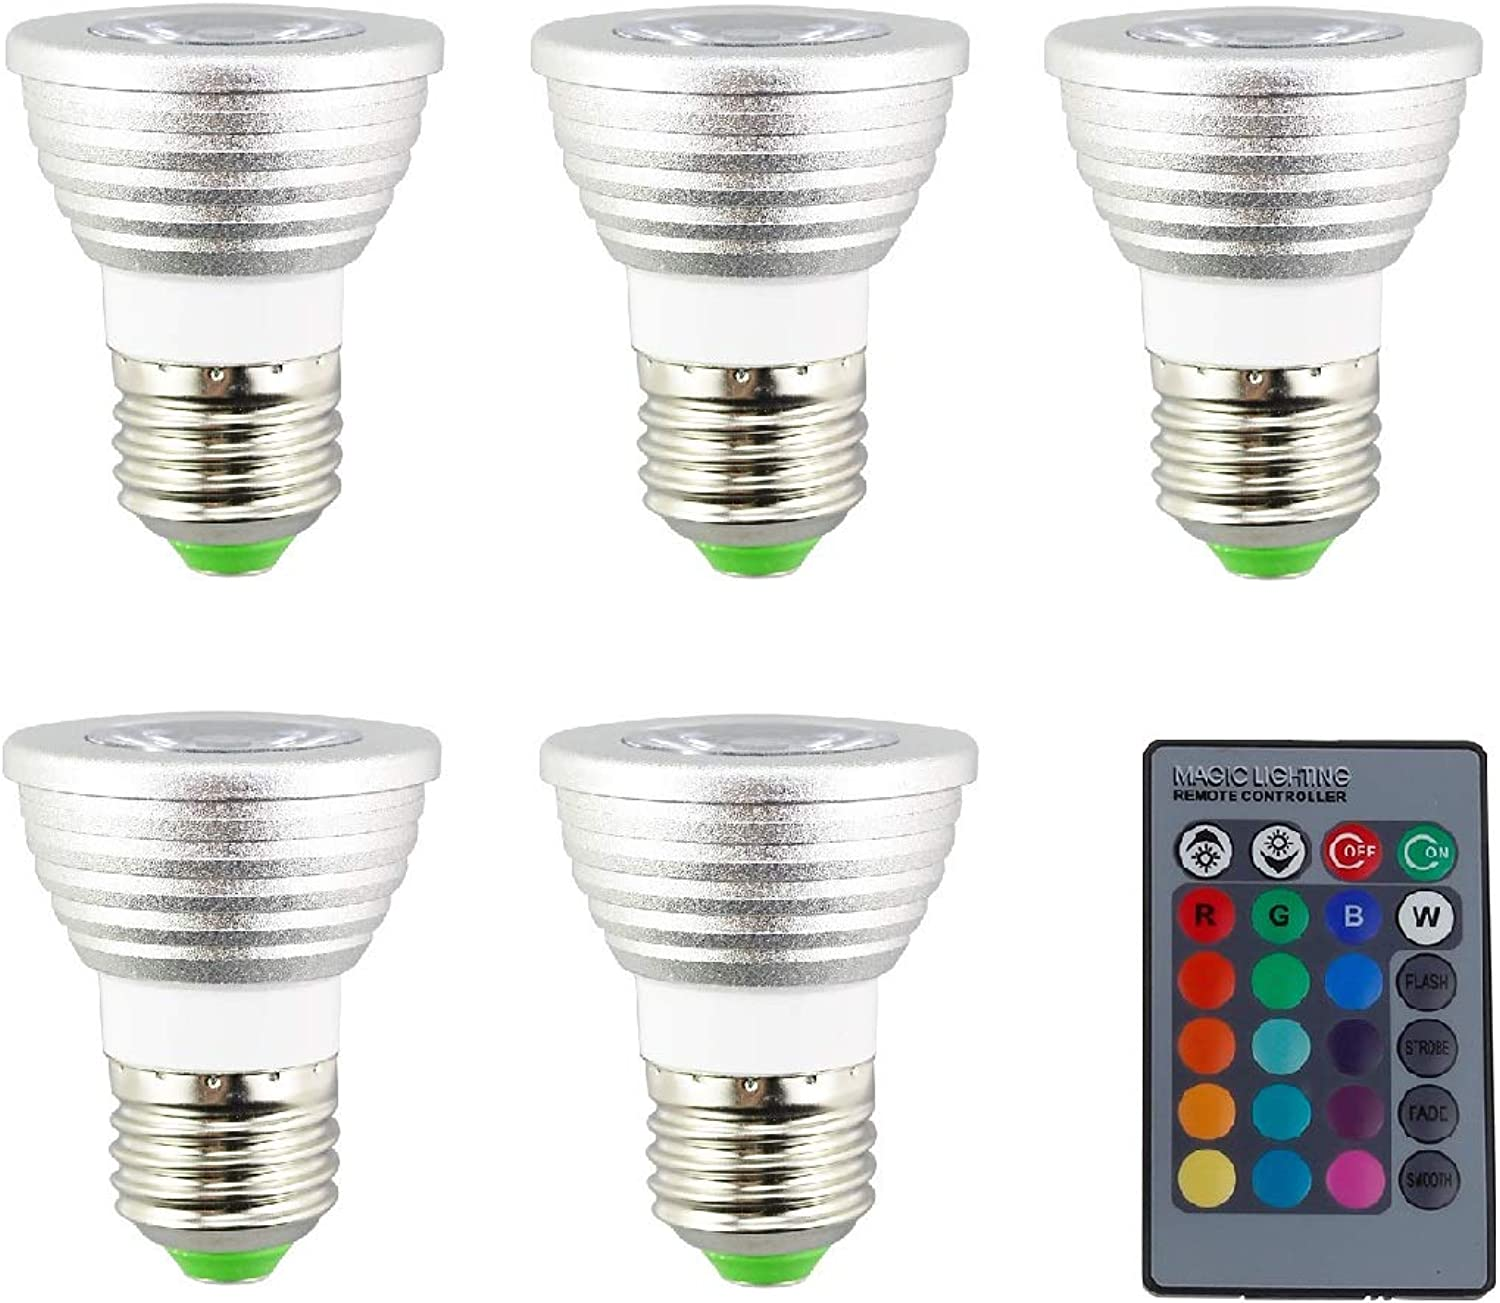 Ruiyue 5 PCS E27 E26 RGB LED Spotlight 3 W LED Lamp 85265V lamp High Power 16 colors Changeable Home Decoration Infrared Remote Control